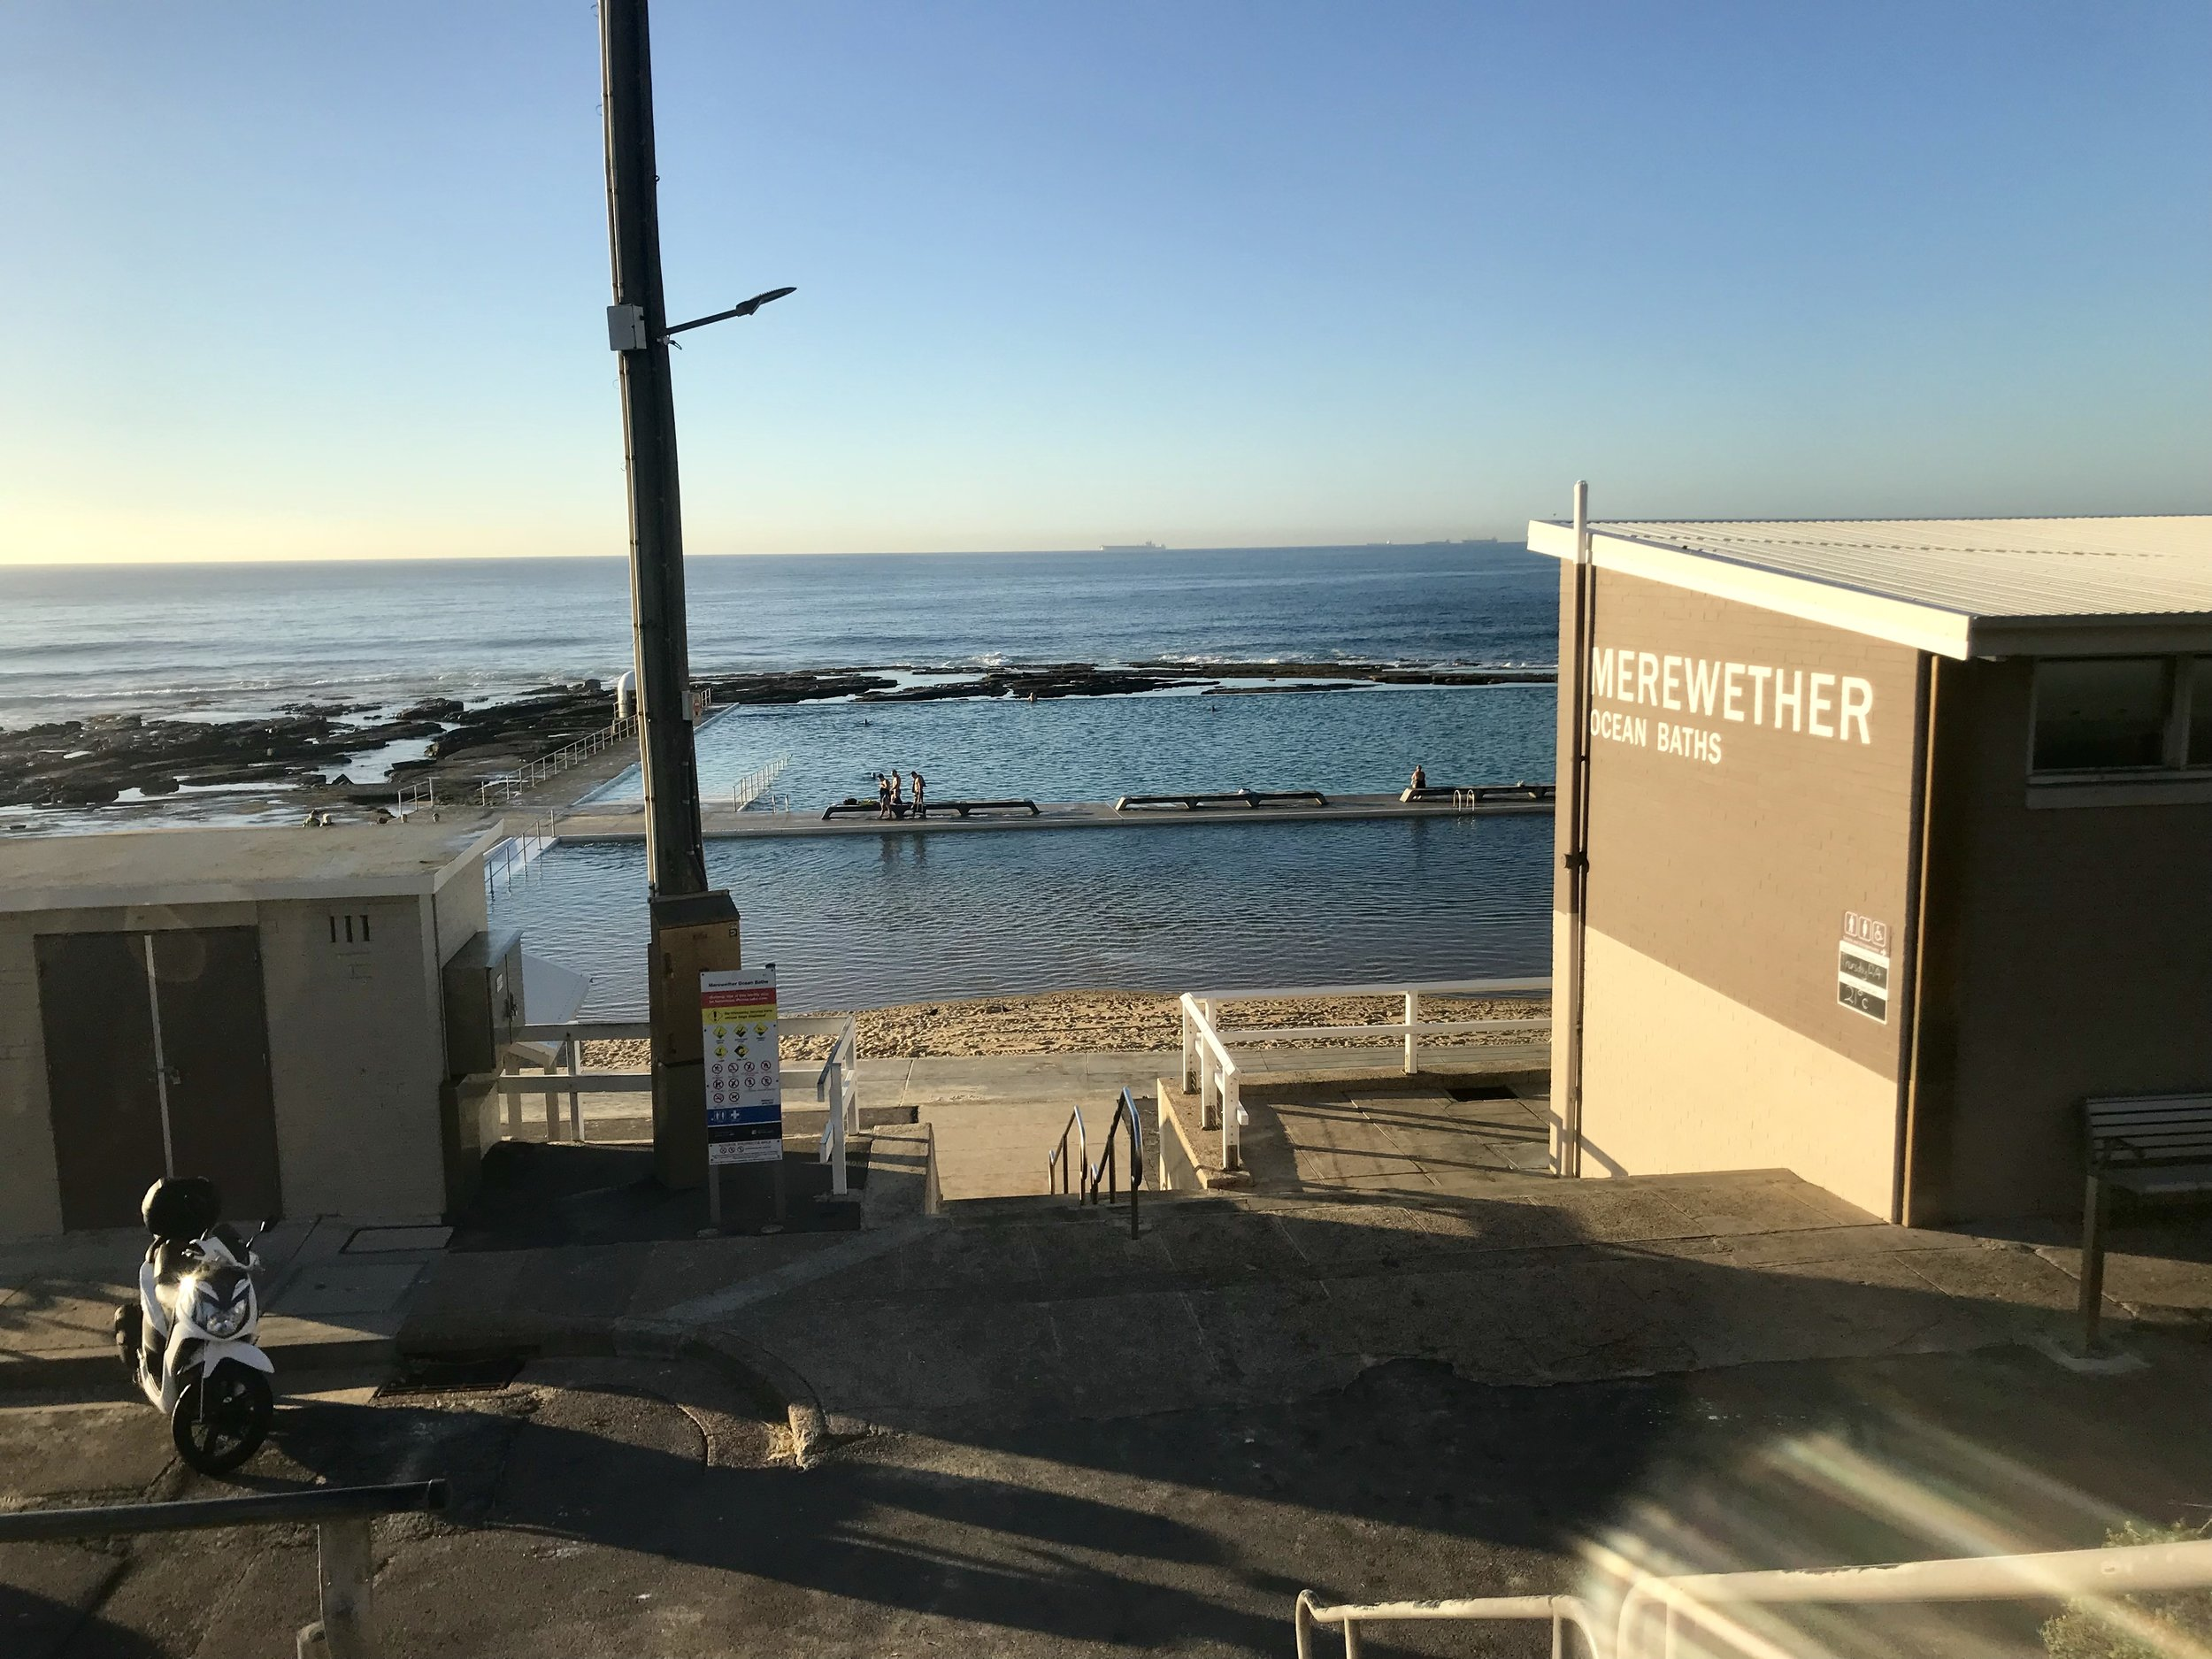 Merewether baths make the change